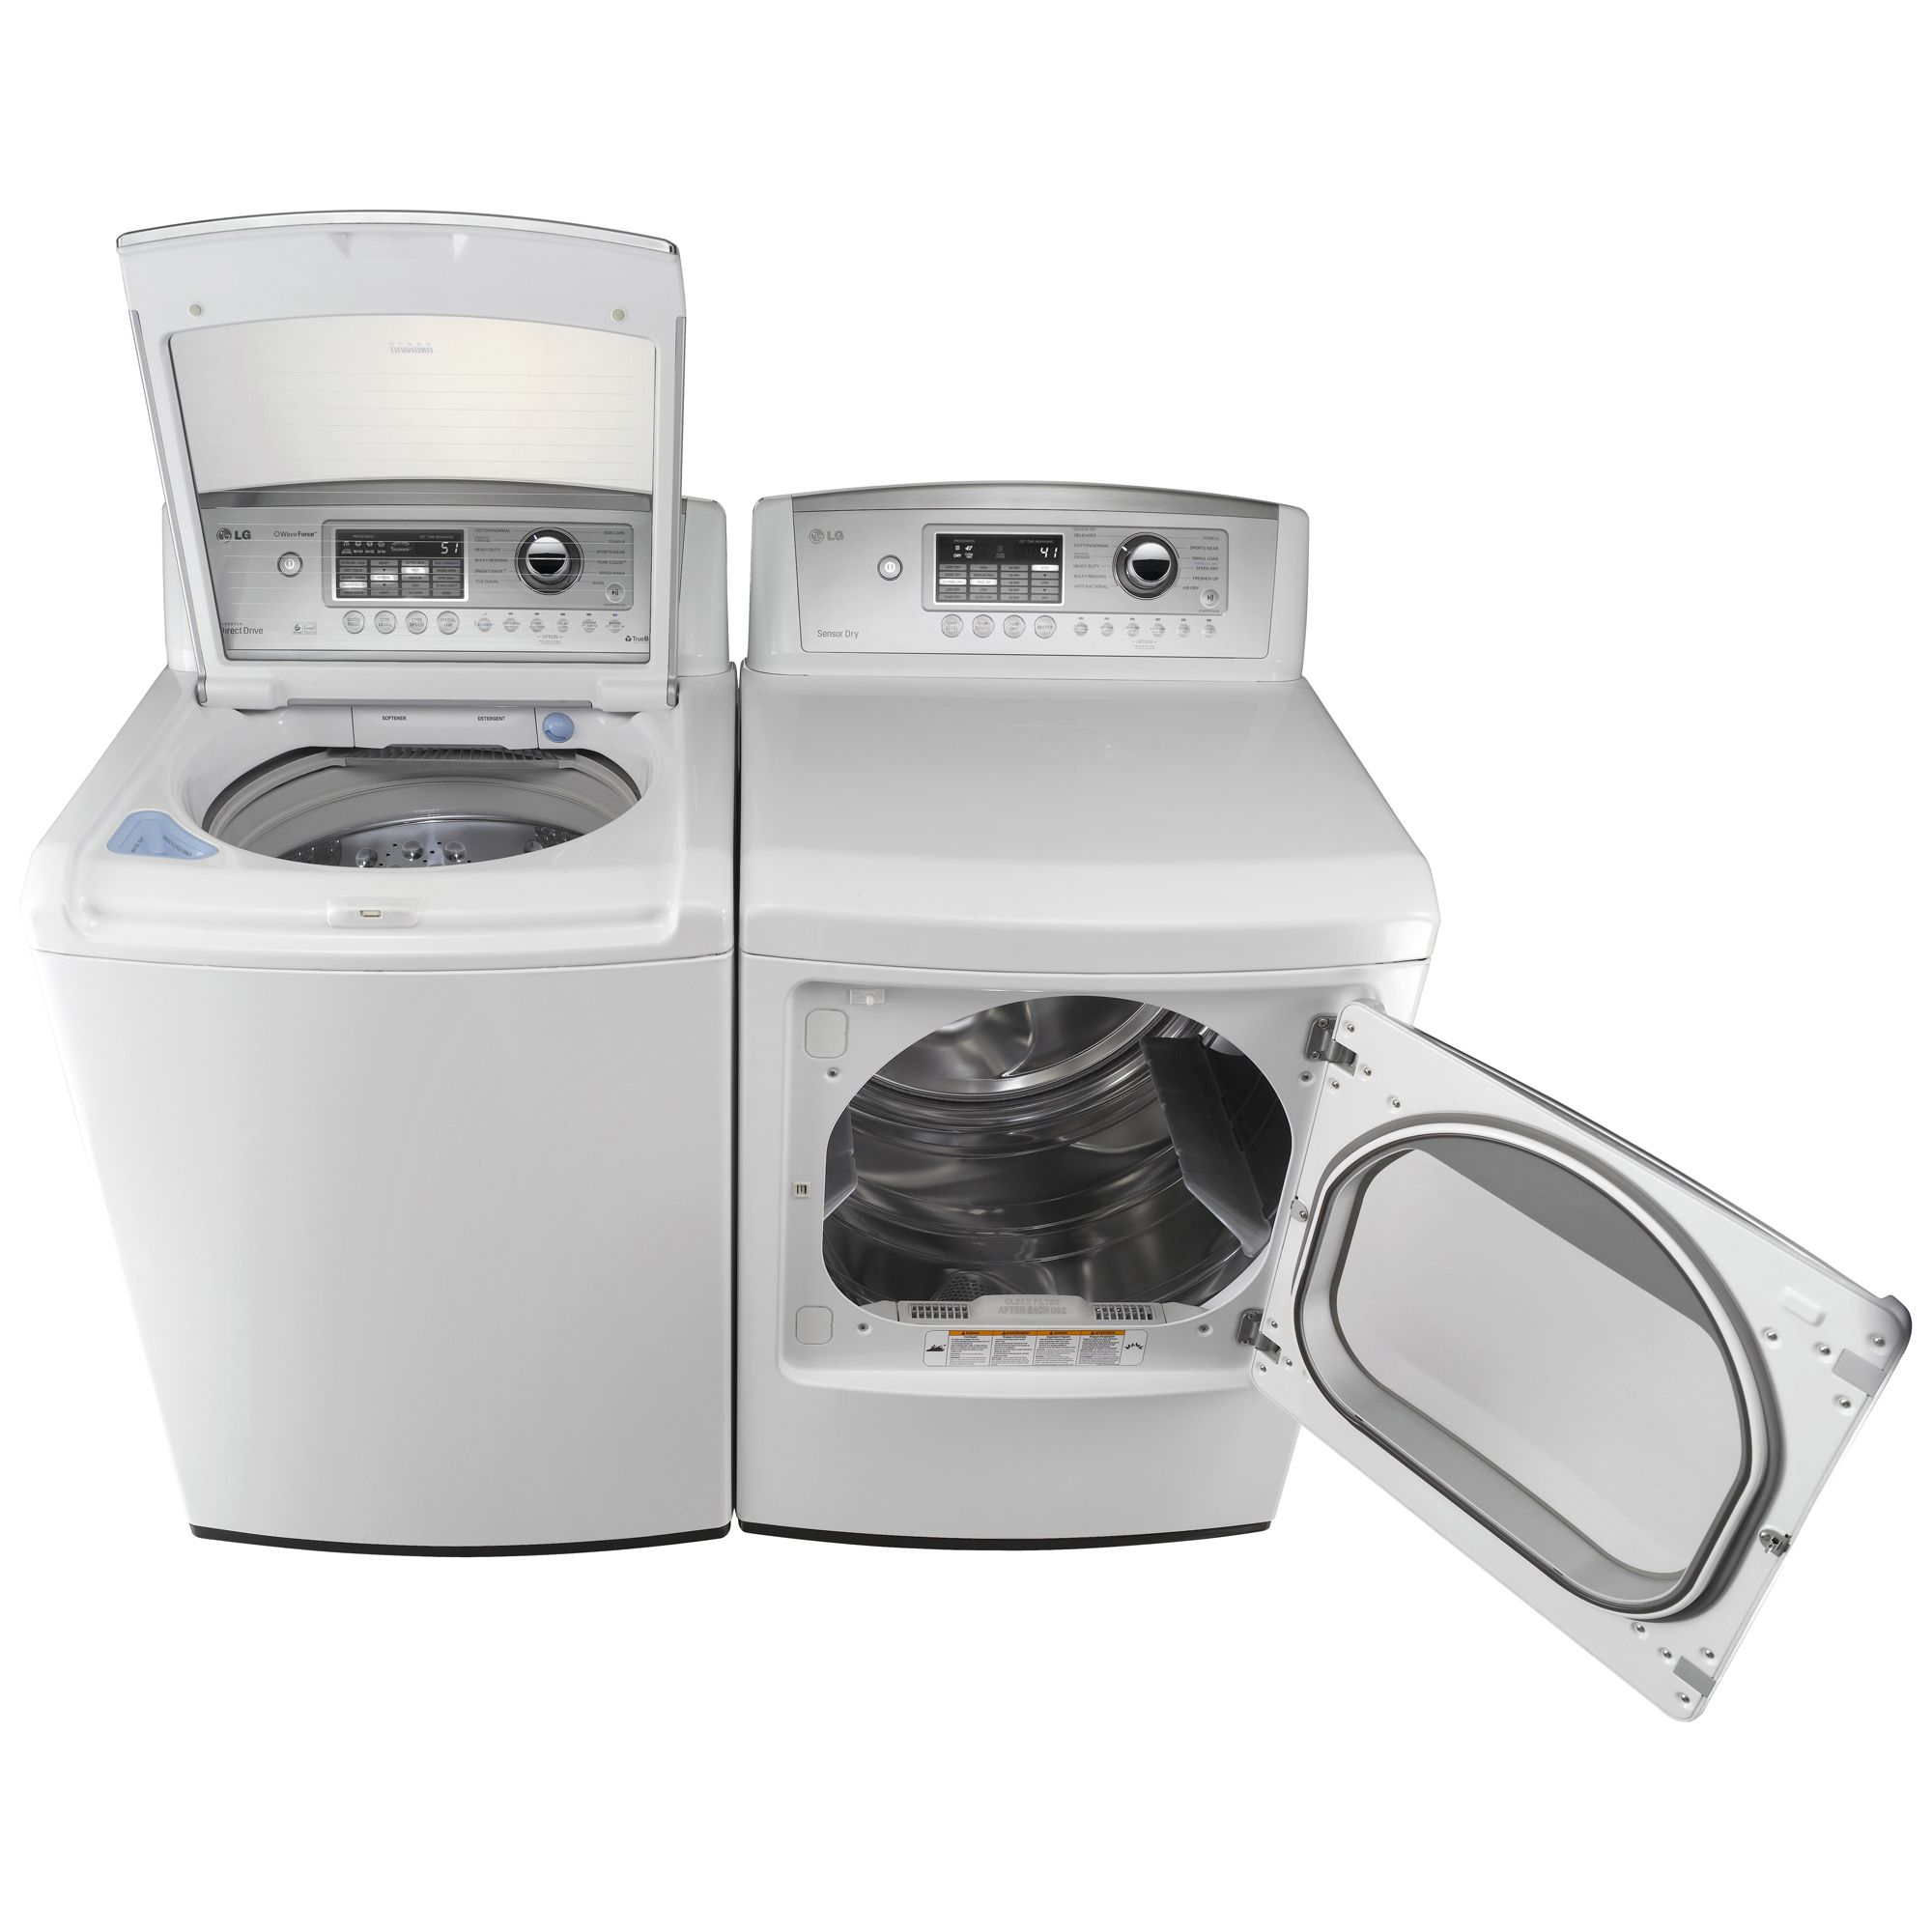 LG 7.3 cu. ft. Gas Dryer, White